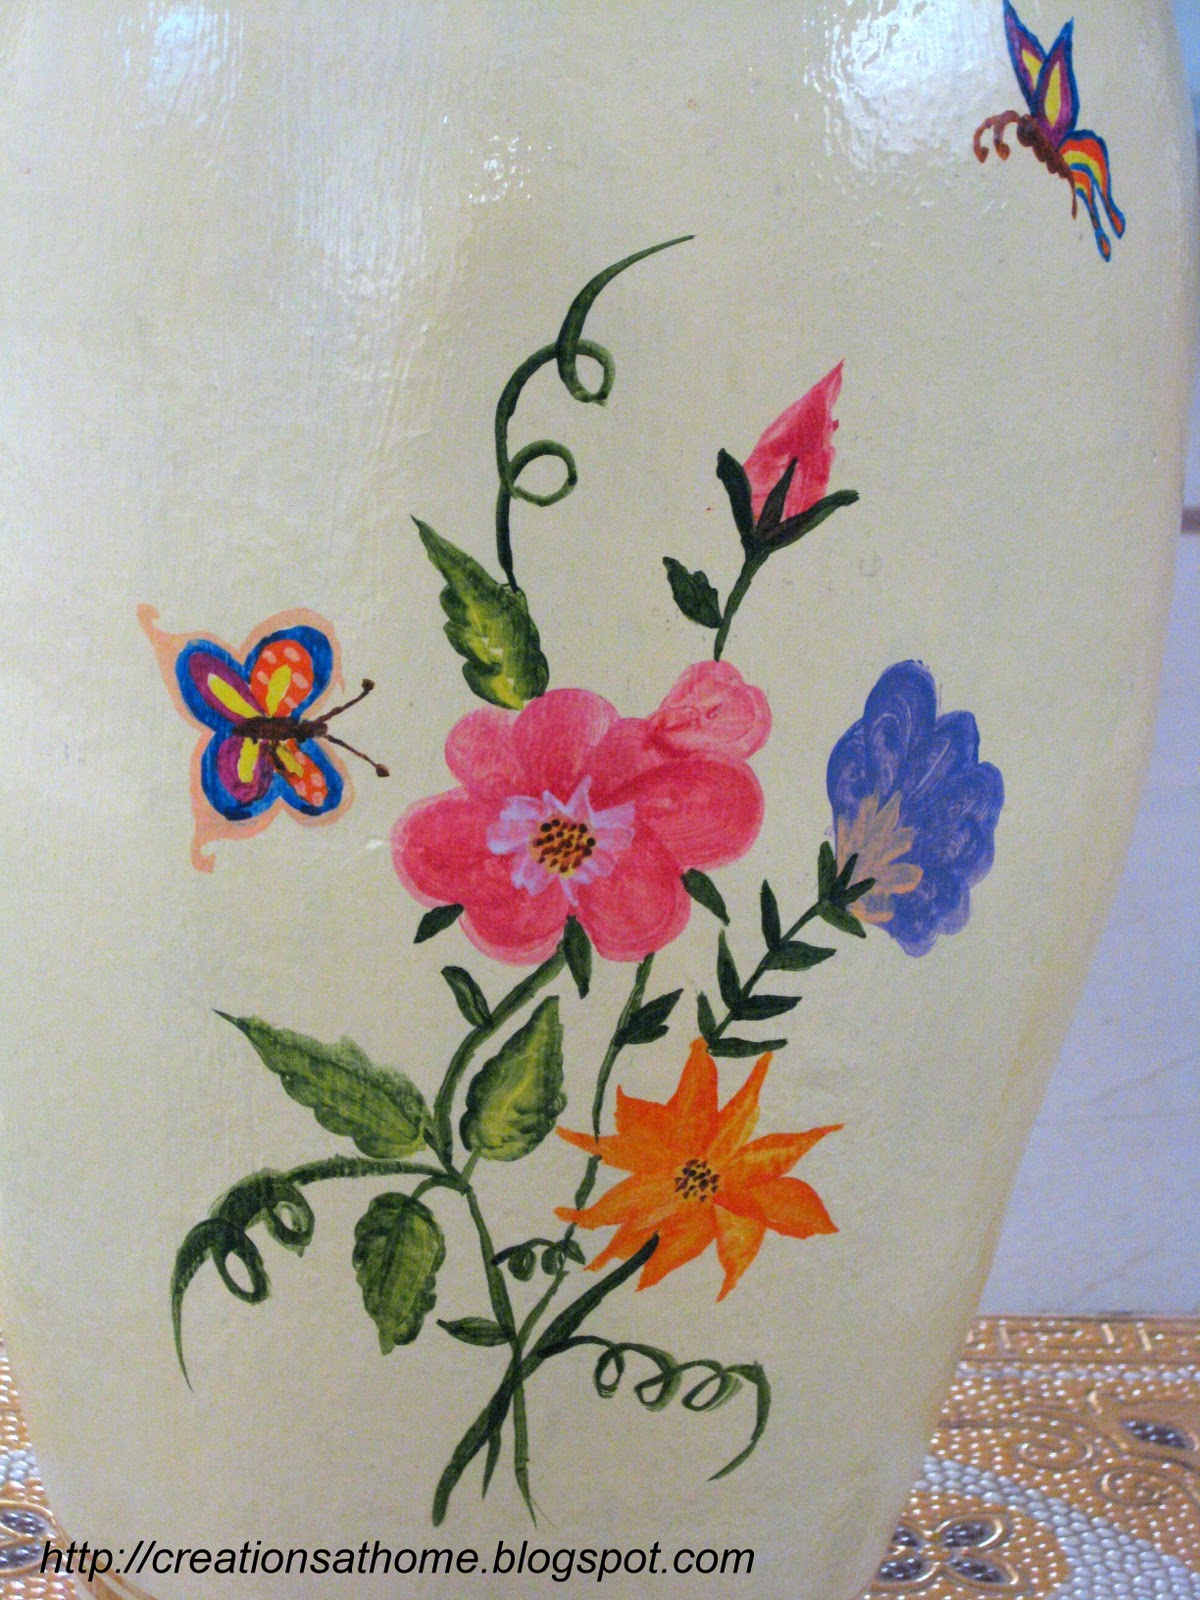 Flower Pot Painting Designs http://creationsathome.blogspot.com/2011/10/dazzling-flower-pot.html